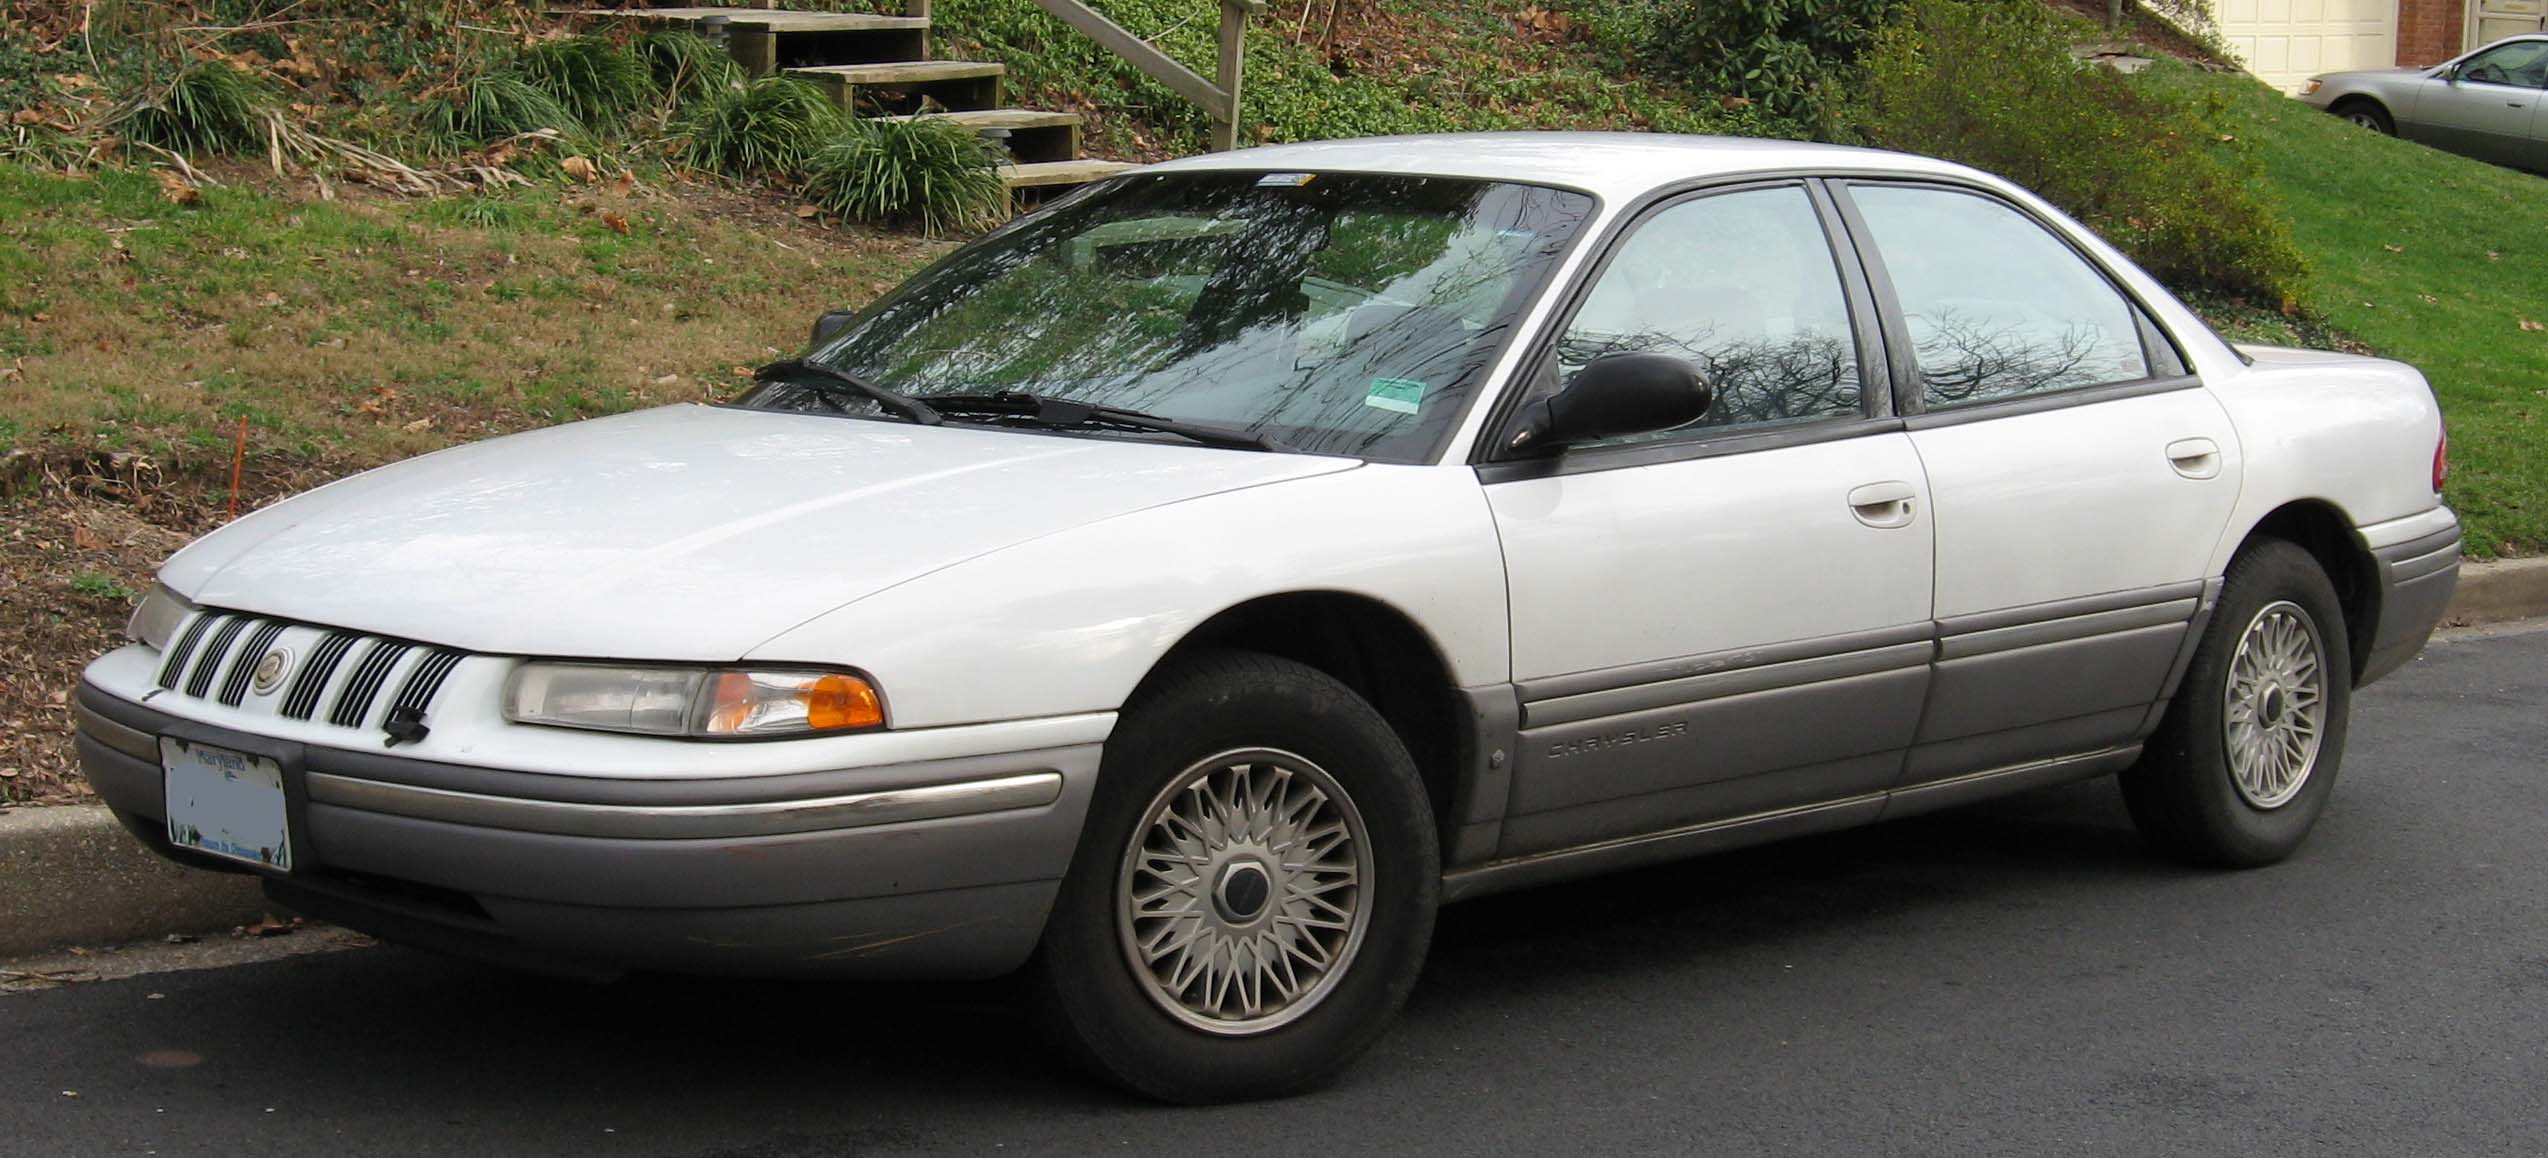 1999 Chrysler Concorde #15